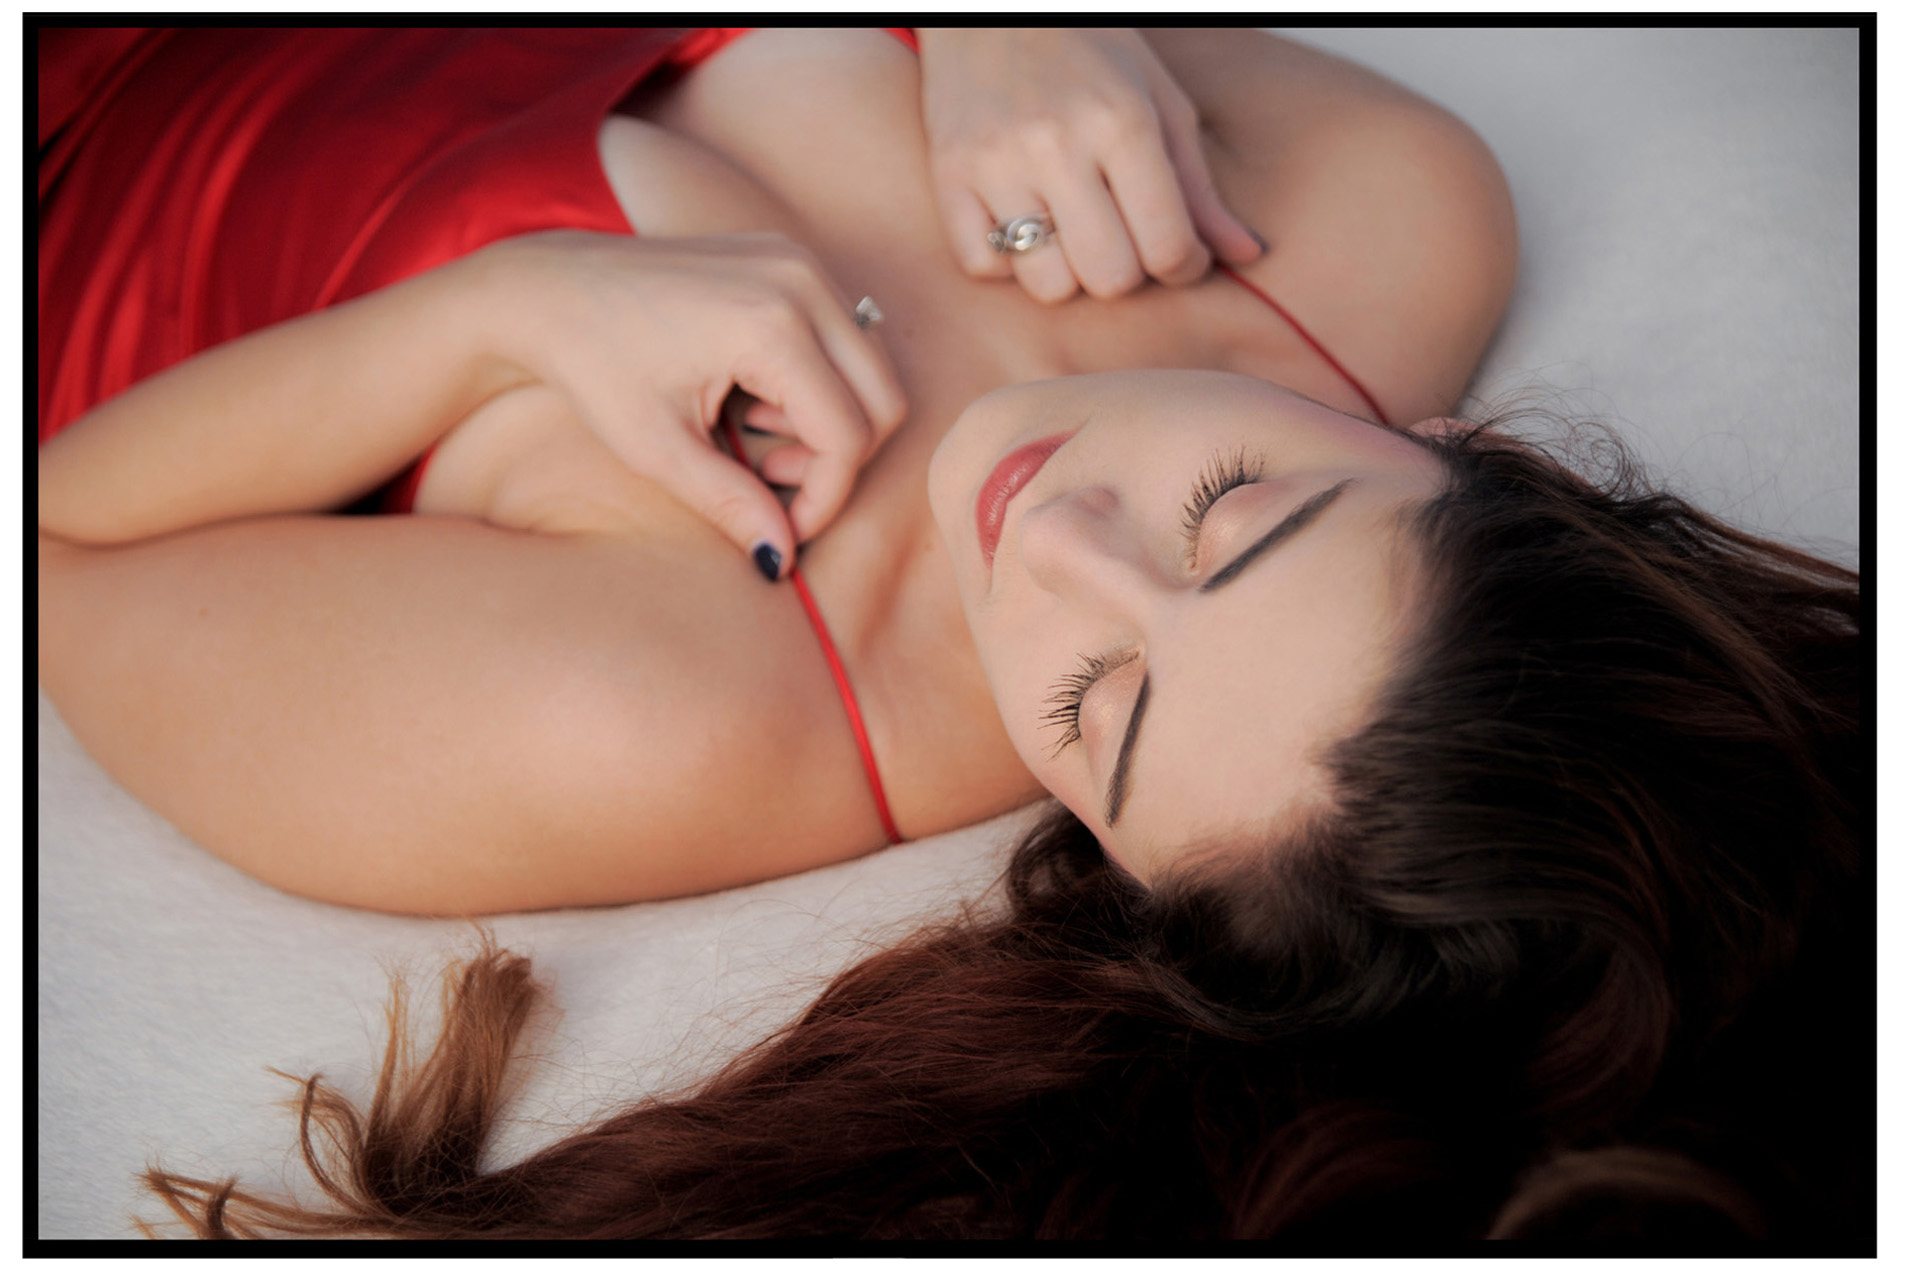 Troy, Michigan based female photographer takes fun and tasteful boudoir photos.